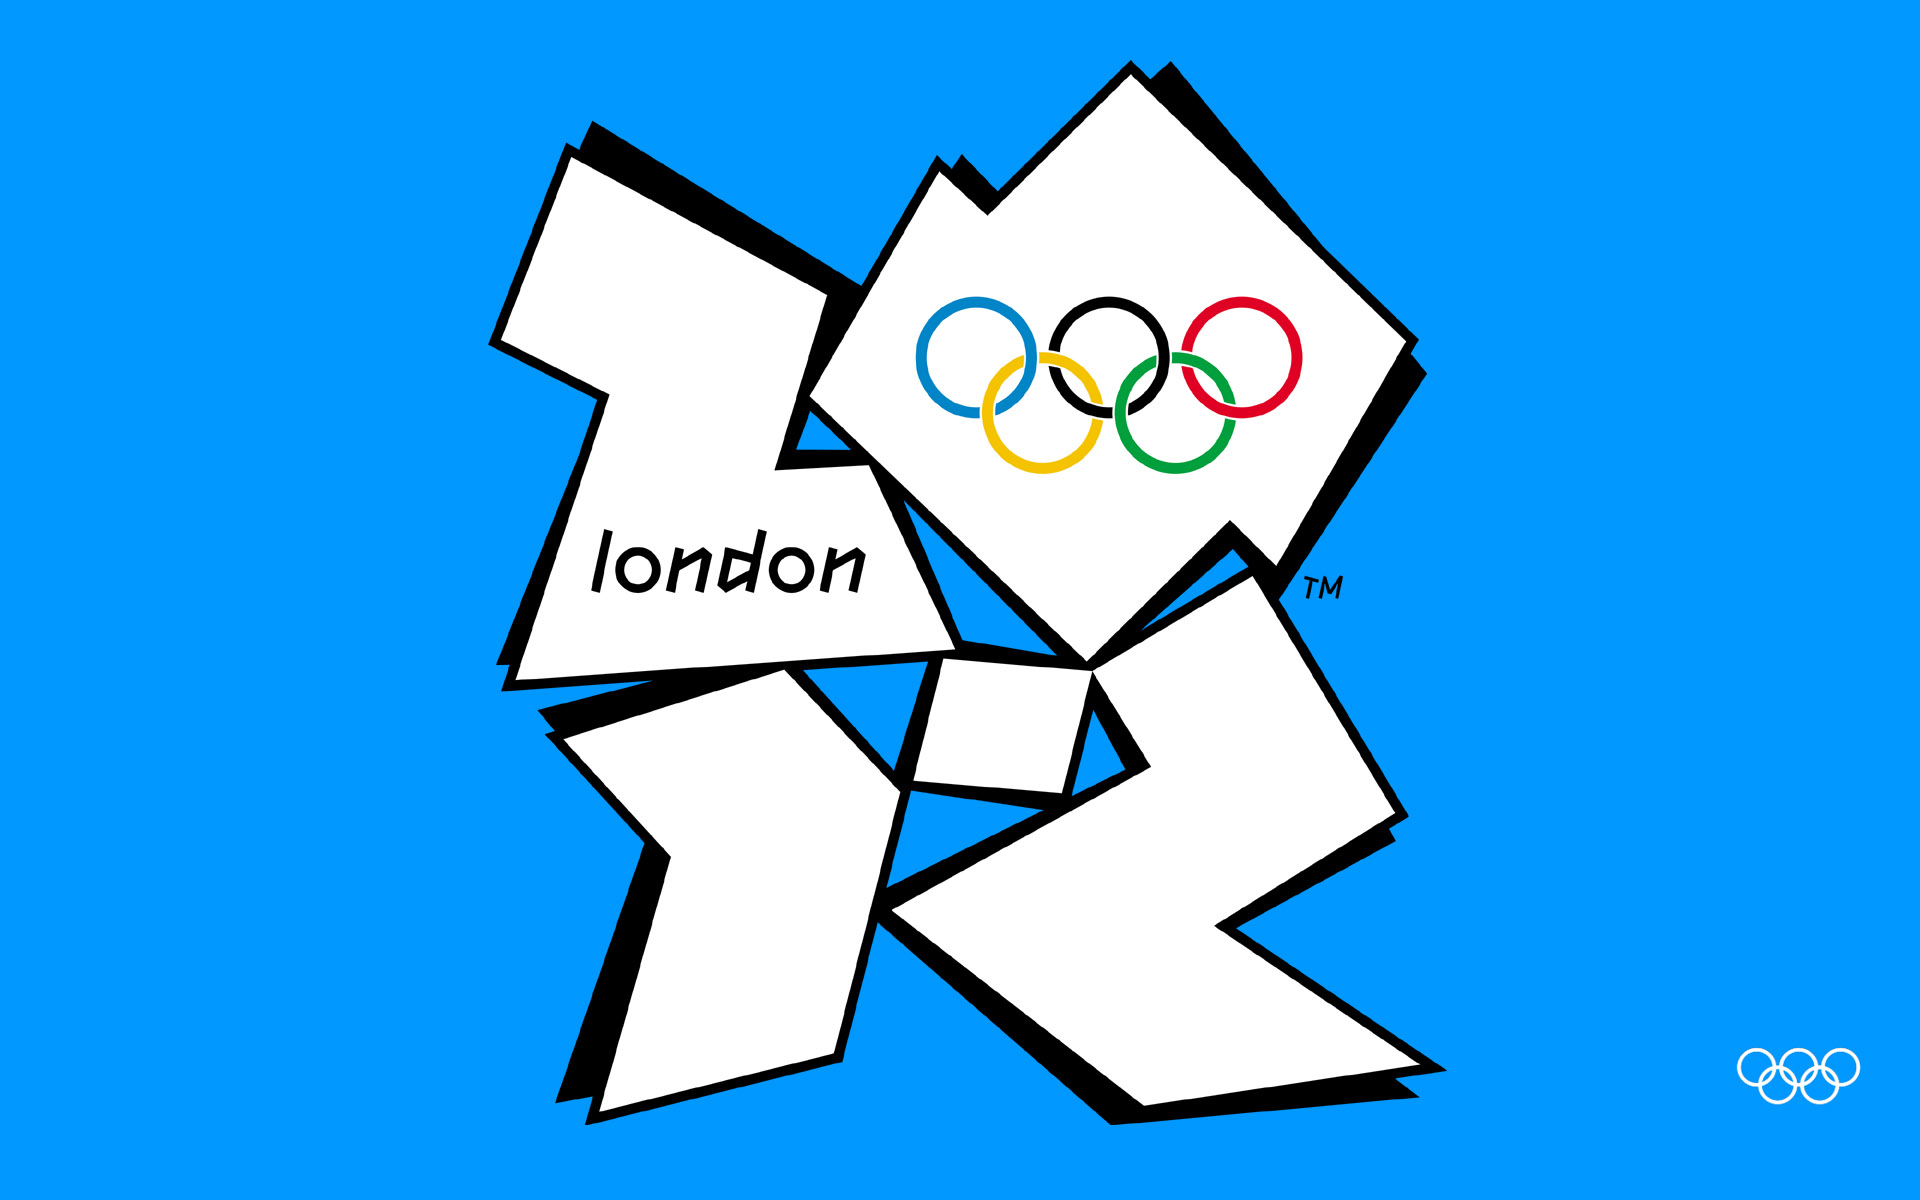 London 2012 olympic logo was it really so bad after all adweek wolff olins execs look back at the criticisms buycottarizona Gallery